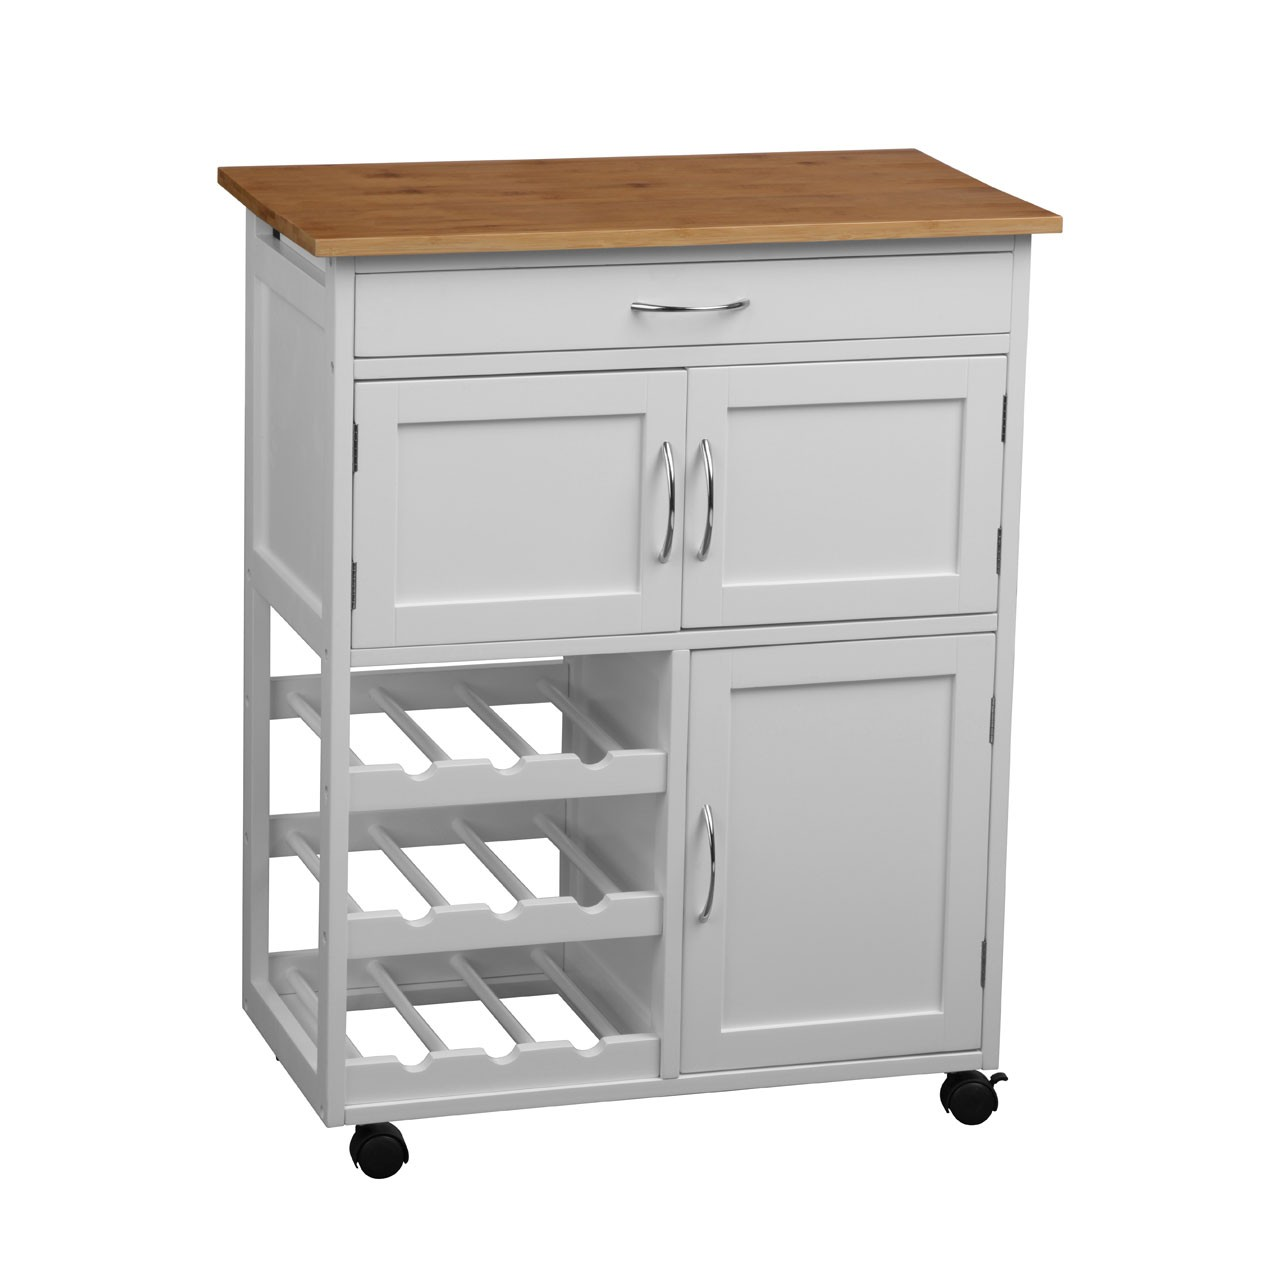 Kitchen Trolley with Bamboo Top - White